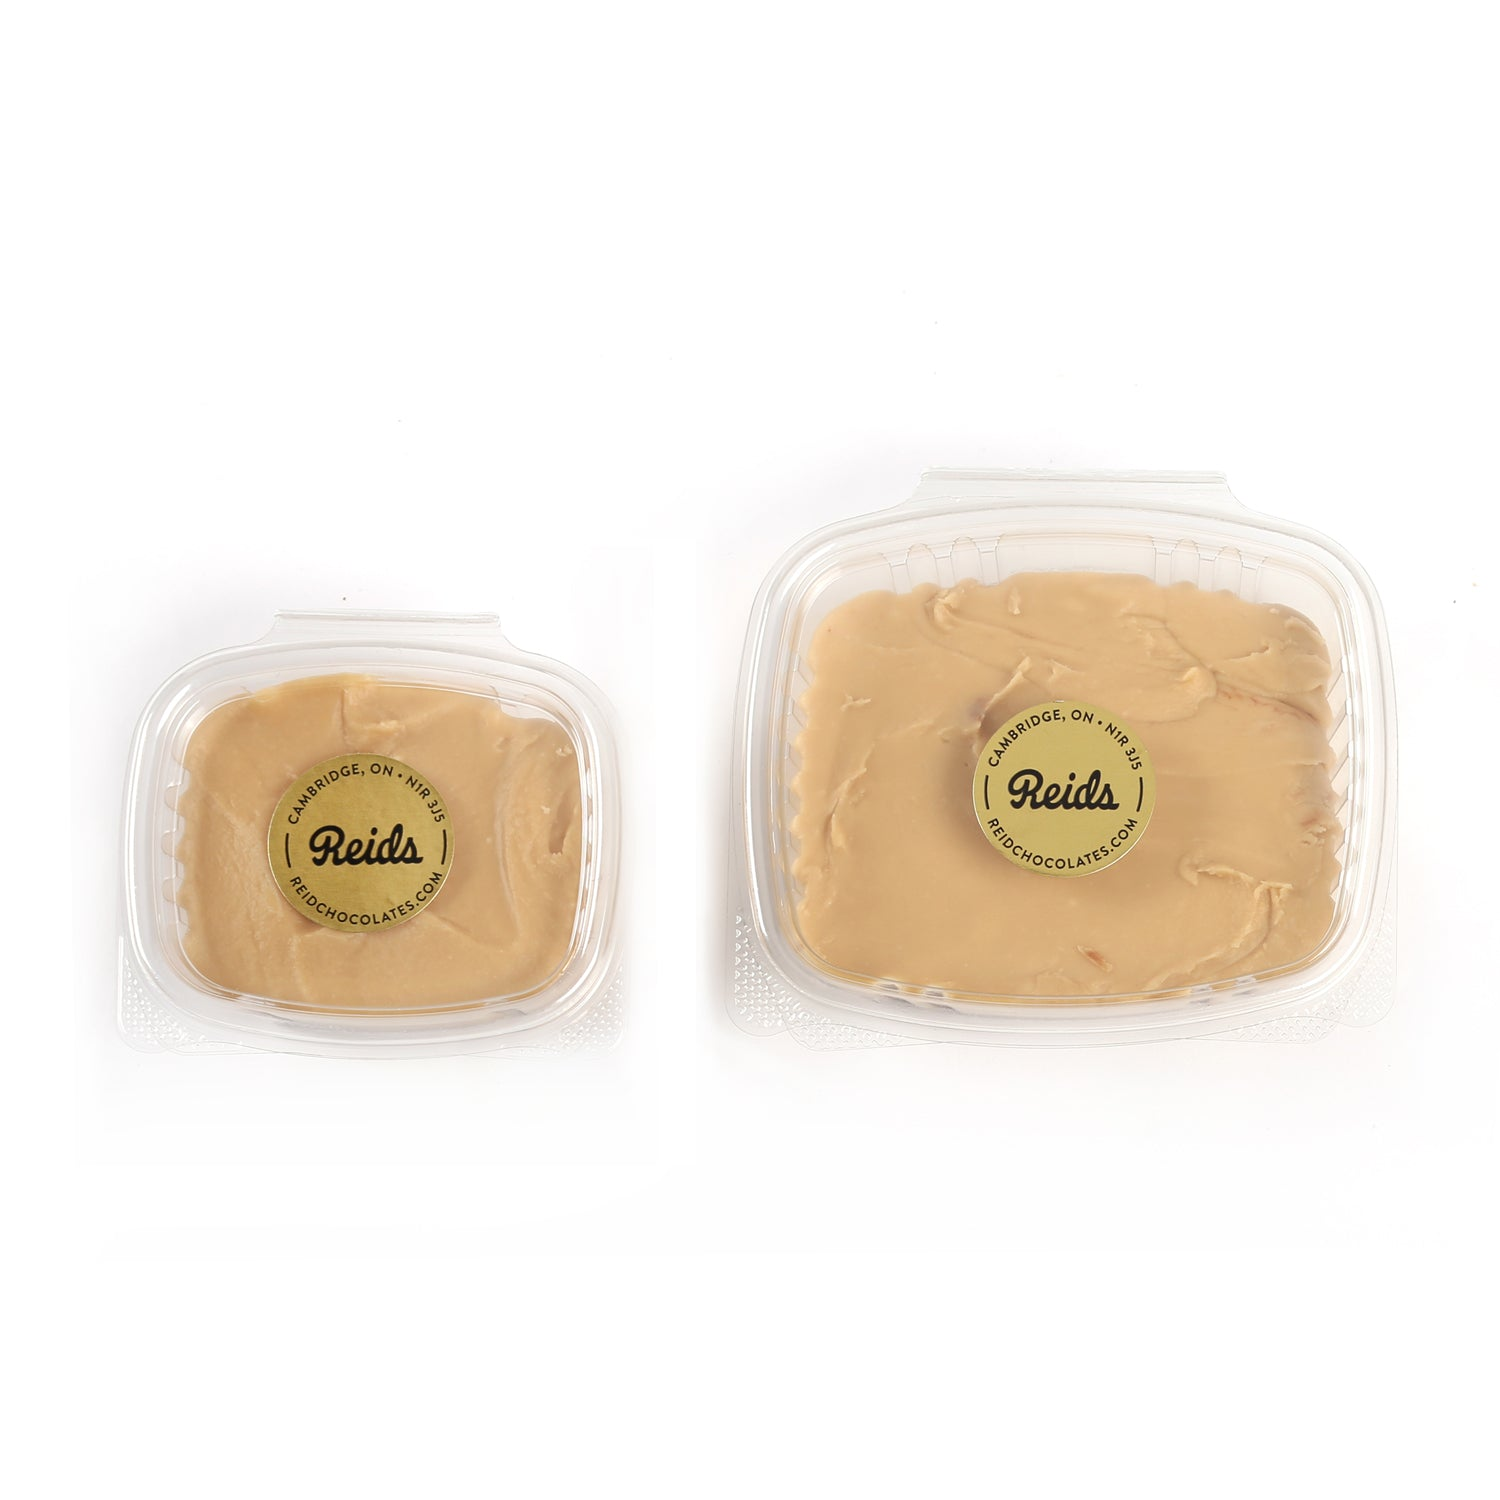 And image of the two container sizes of maple fudge.